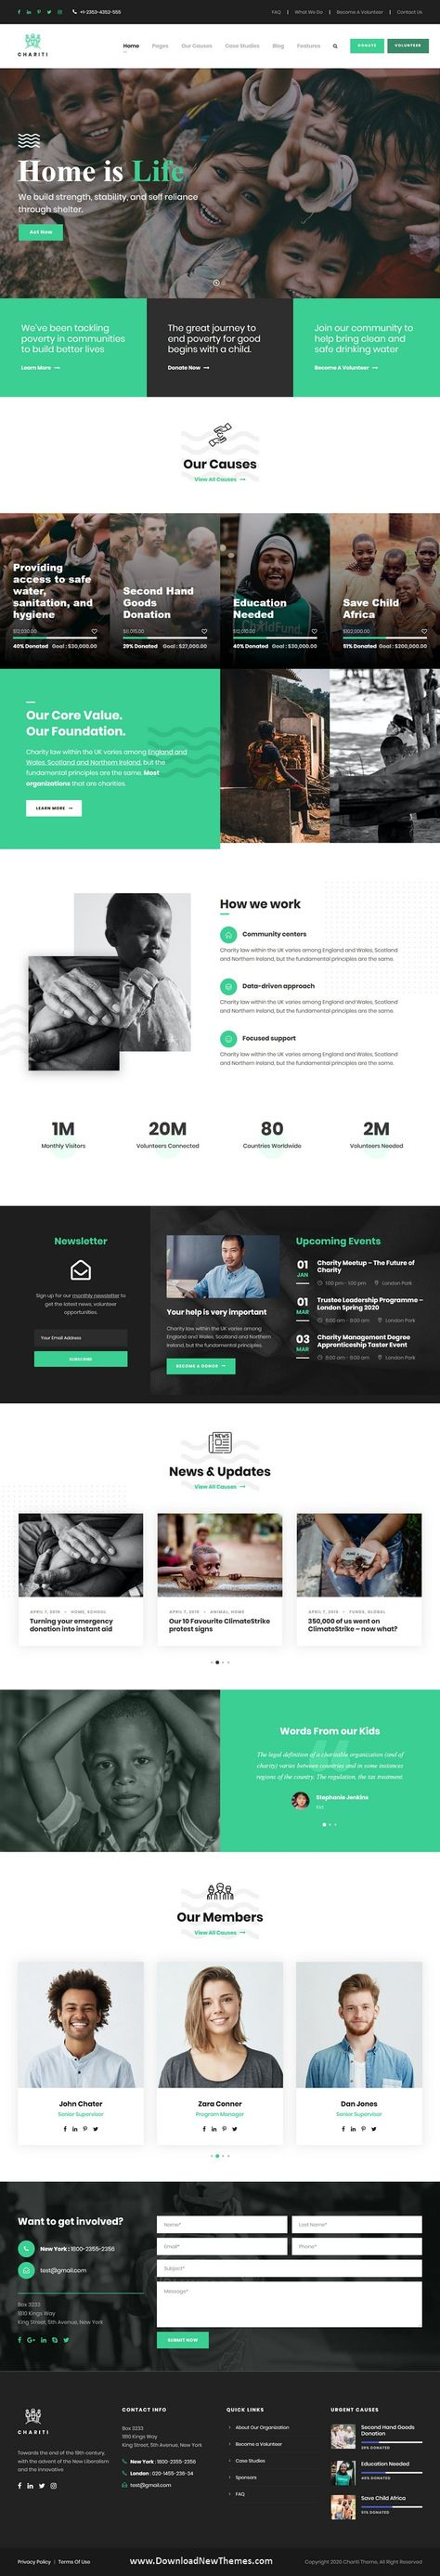 Charity & Donation Responsive Template